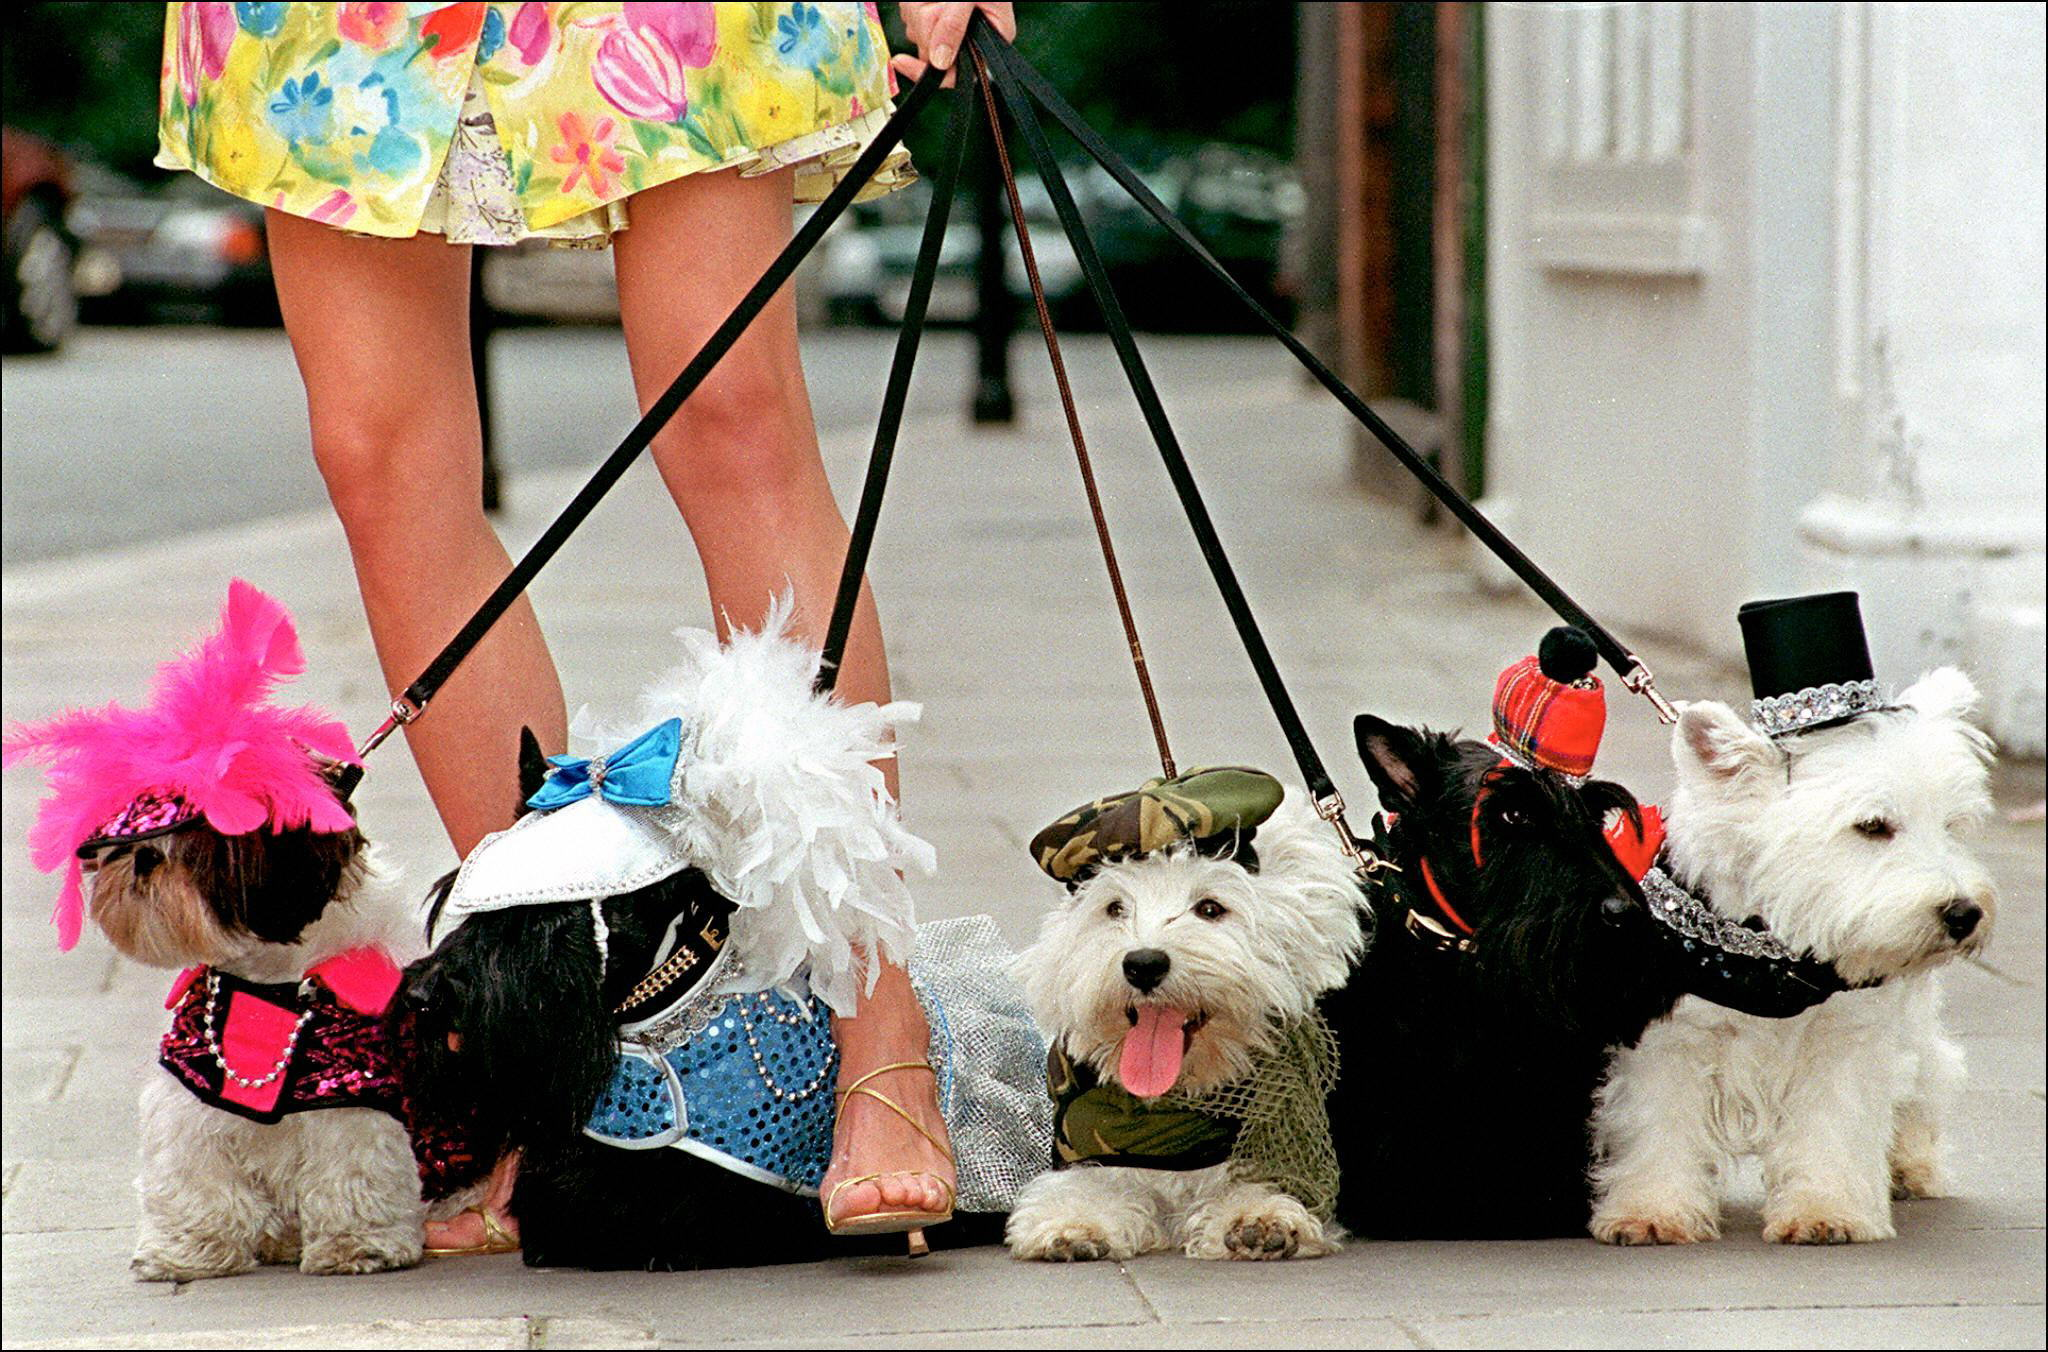 National Dress Up Your Pet Day: Here are some truly adorable ones